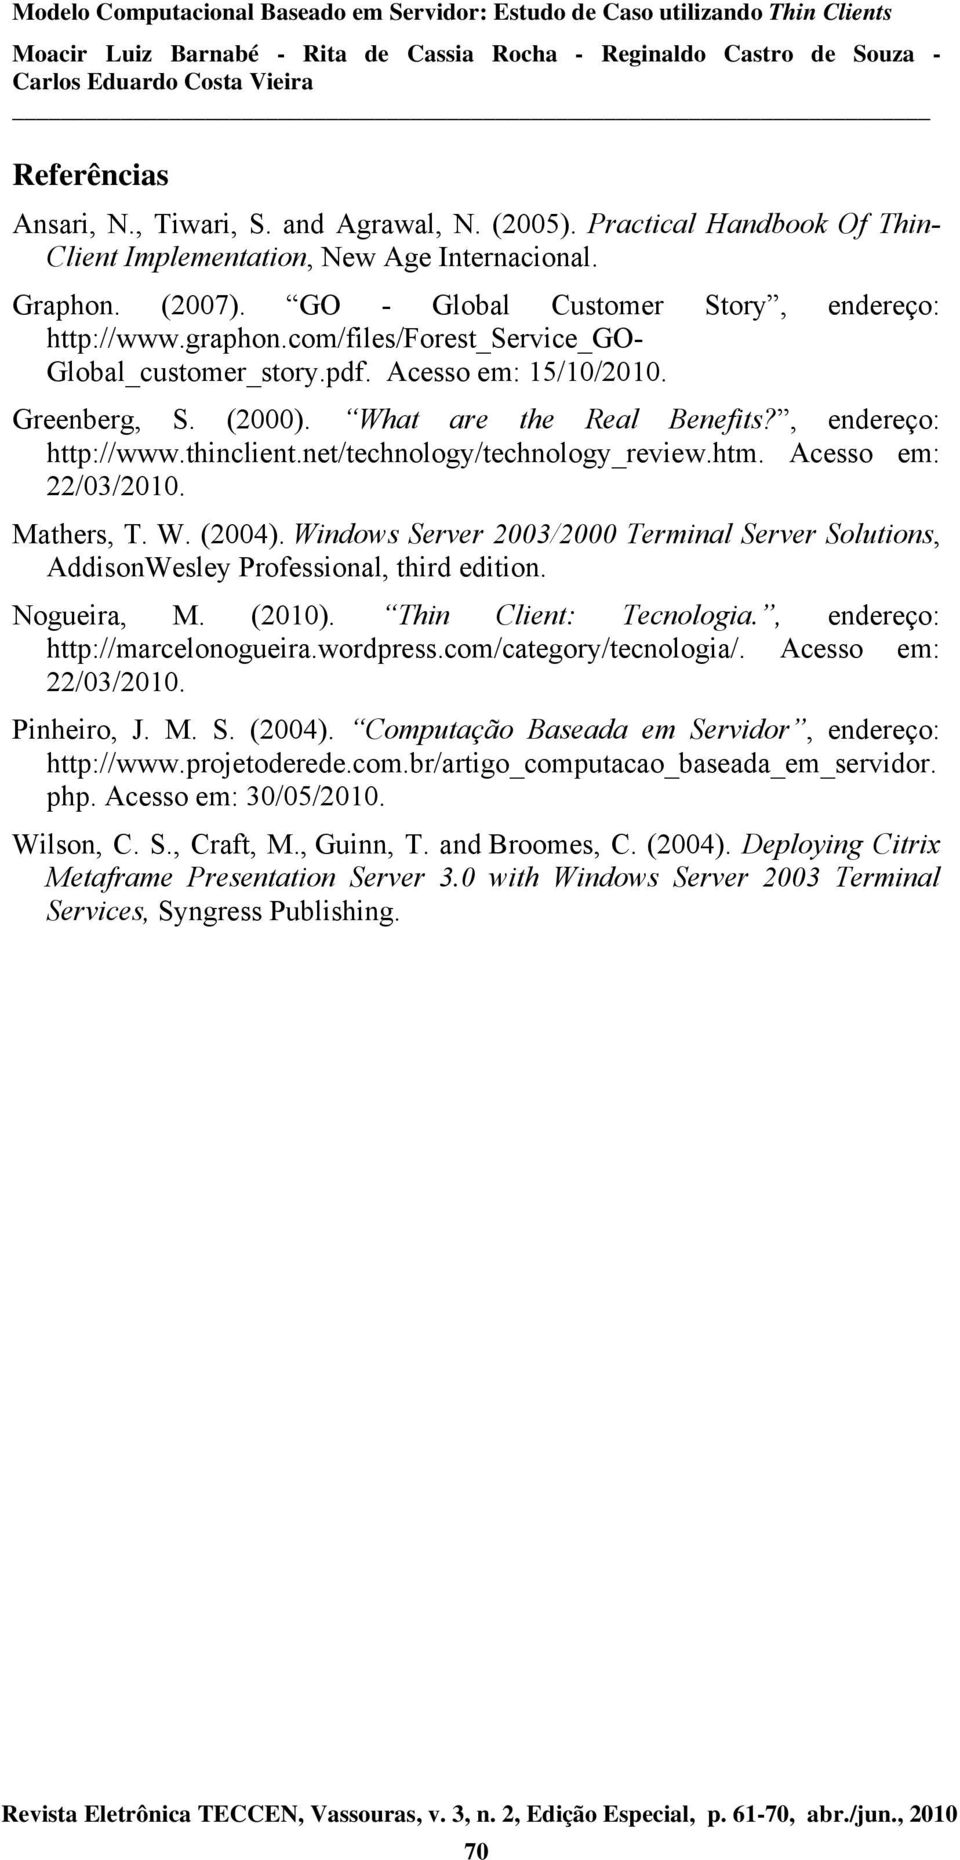 net/technology/technology_review.htm. Acesso em: 22/03/2010. Mathers, T. W. (2004). Windows Server 2003/2000 Terminal Server Solutions, AddisonWesley Professional, third edition. Nogueira, M. (2010).